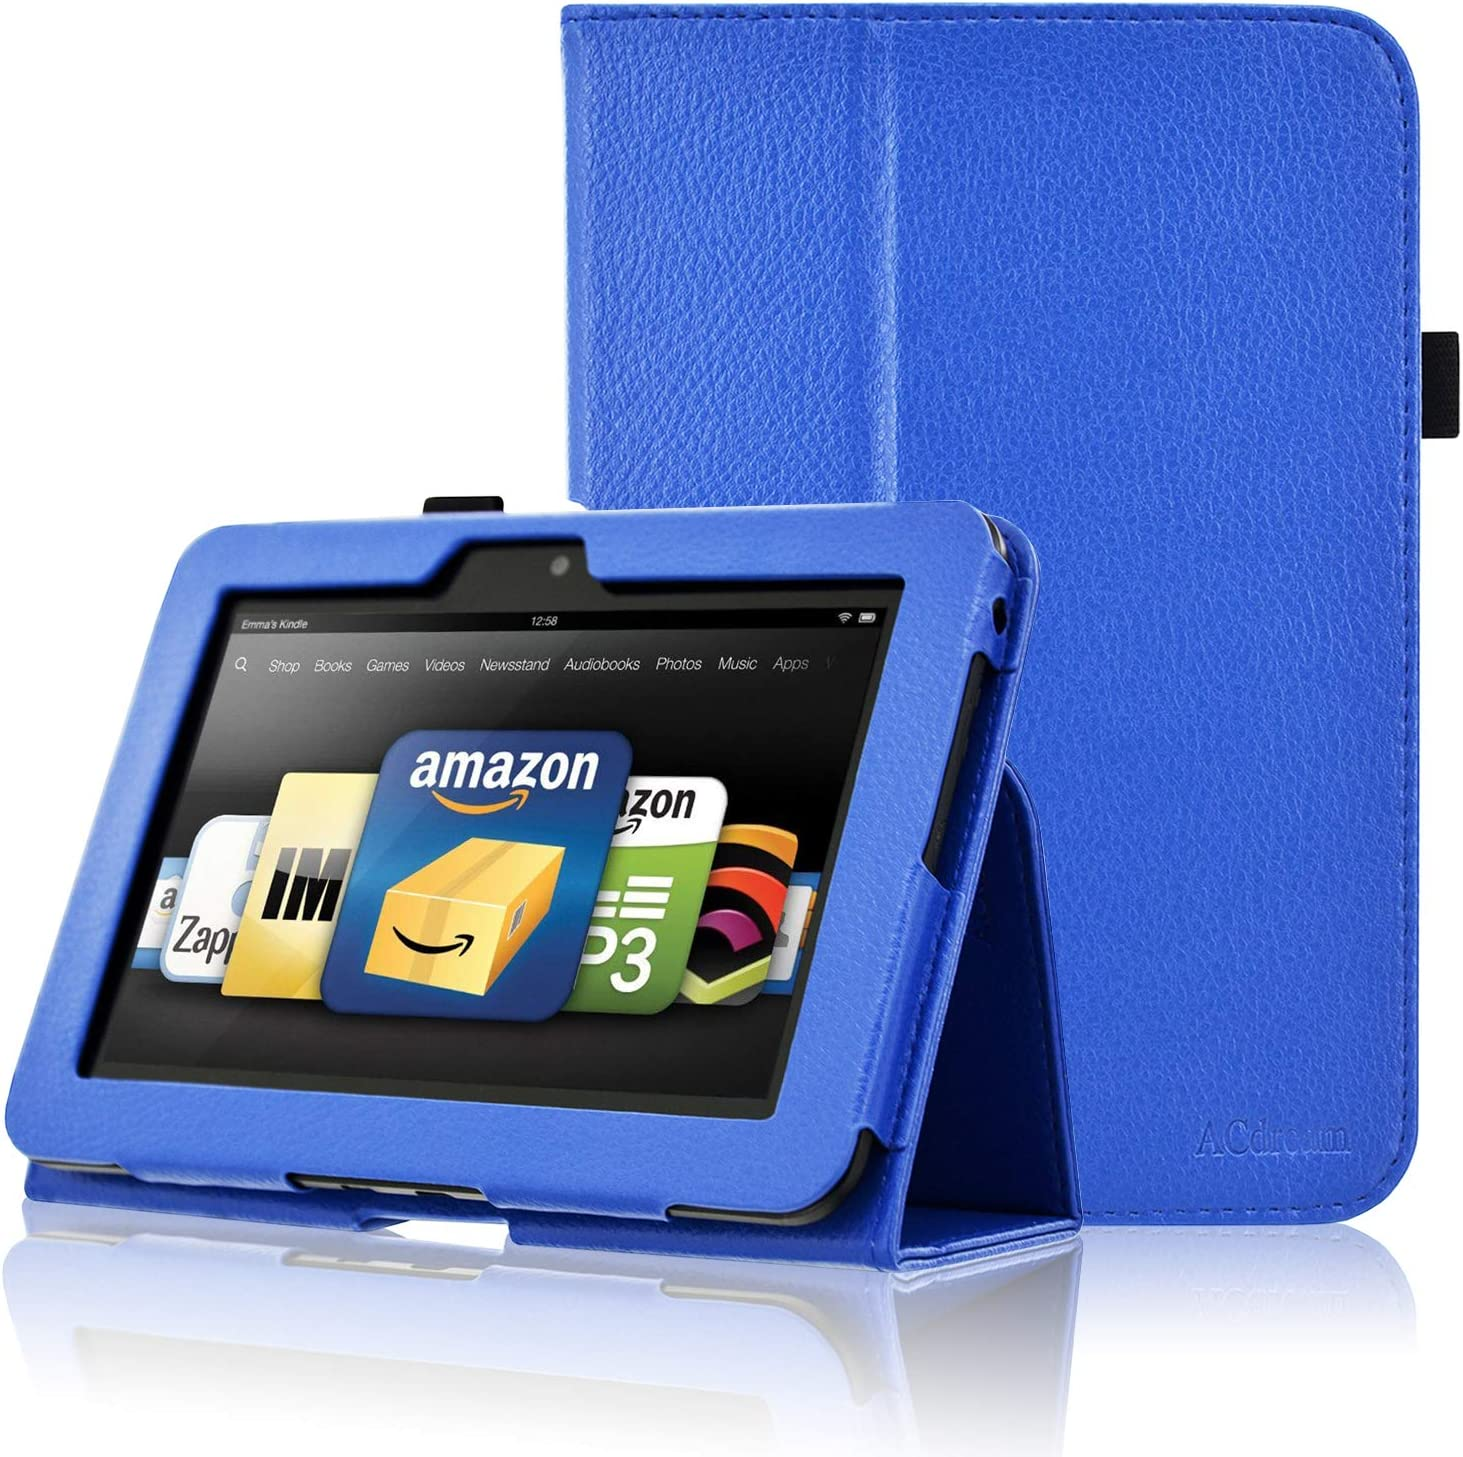 Amazon Com Acdream Kindle Fire Hd 7 2012 Case Folio Leather Cover Case For Kindle Fire Hd 7 2012 Version With Auto Wake Sleep Feather Royal Blue Computers Accessories